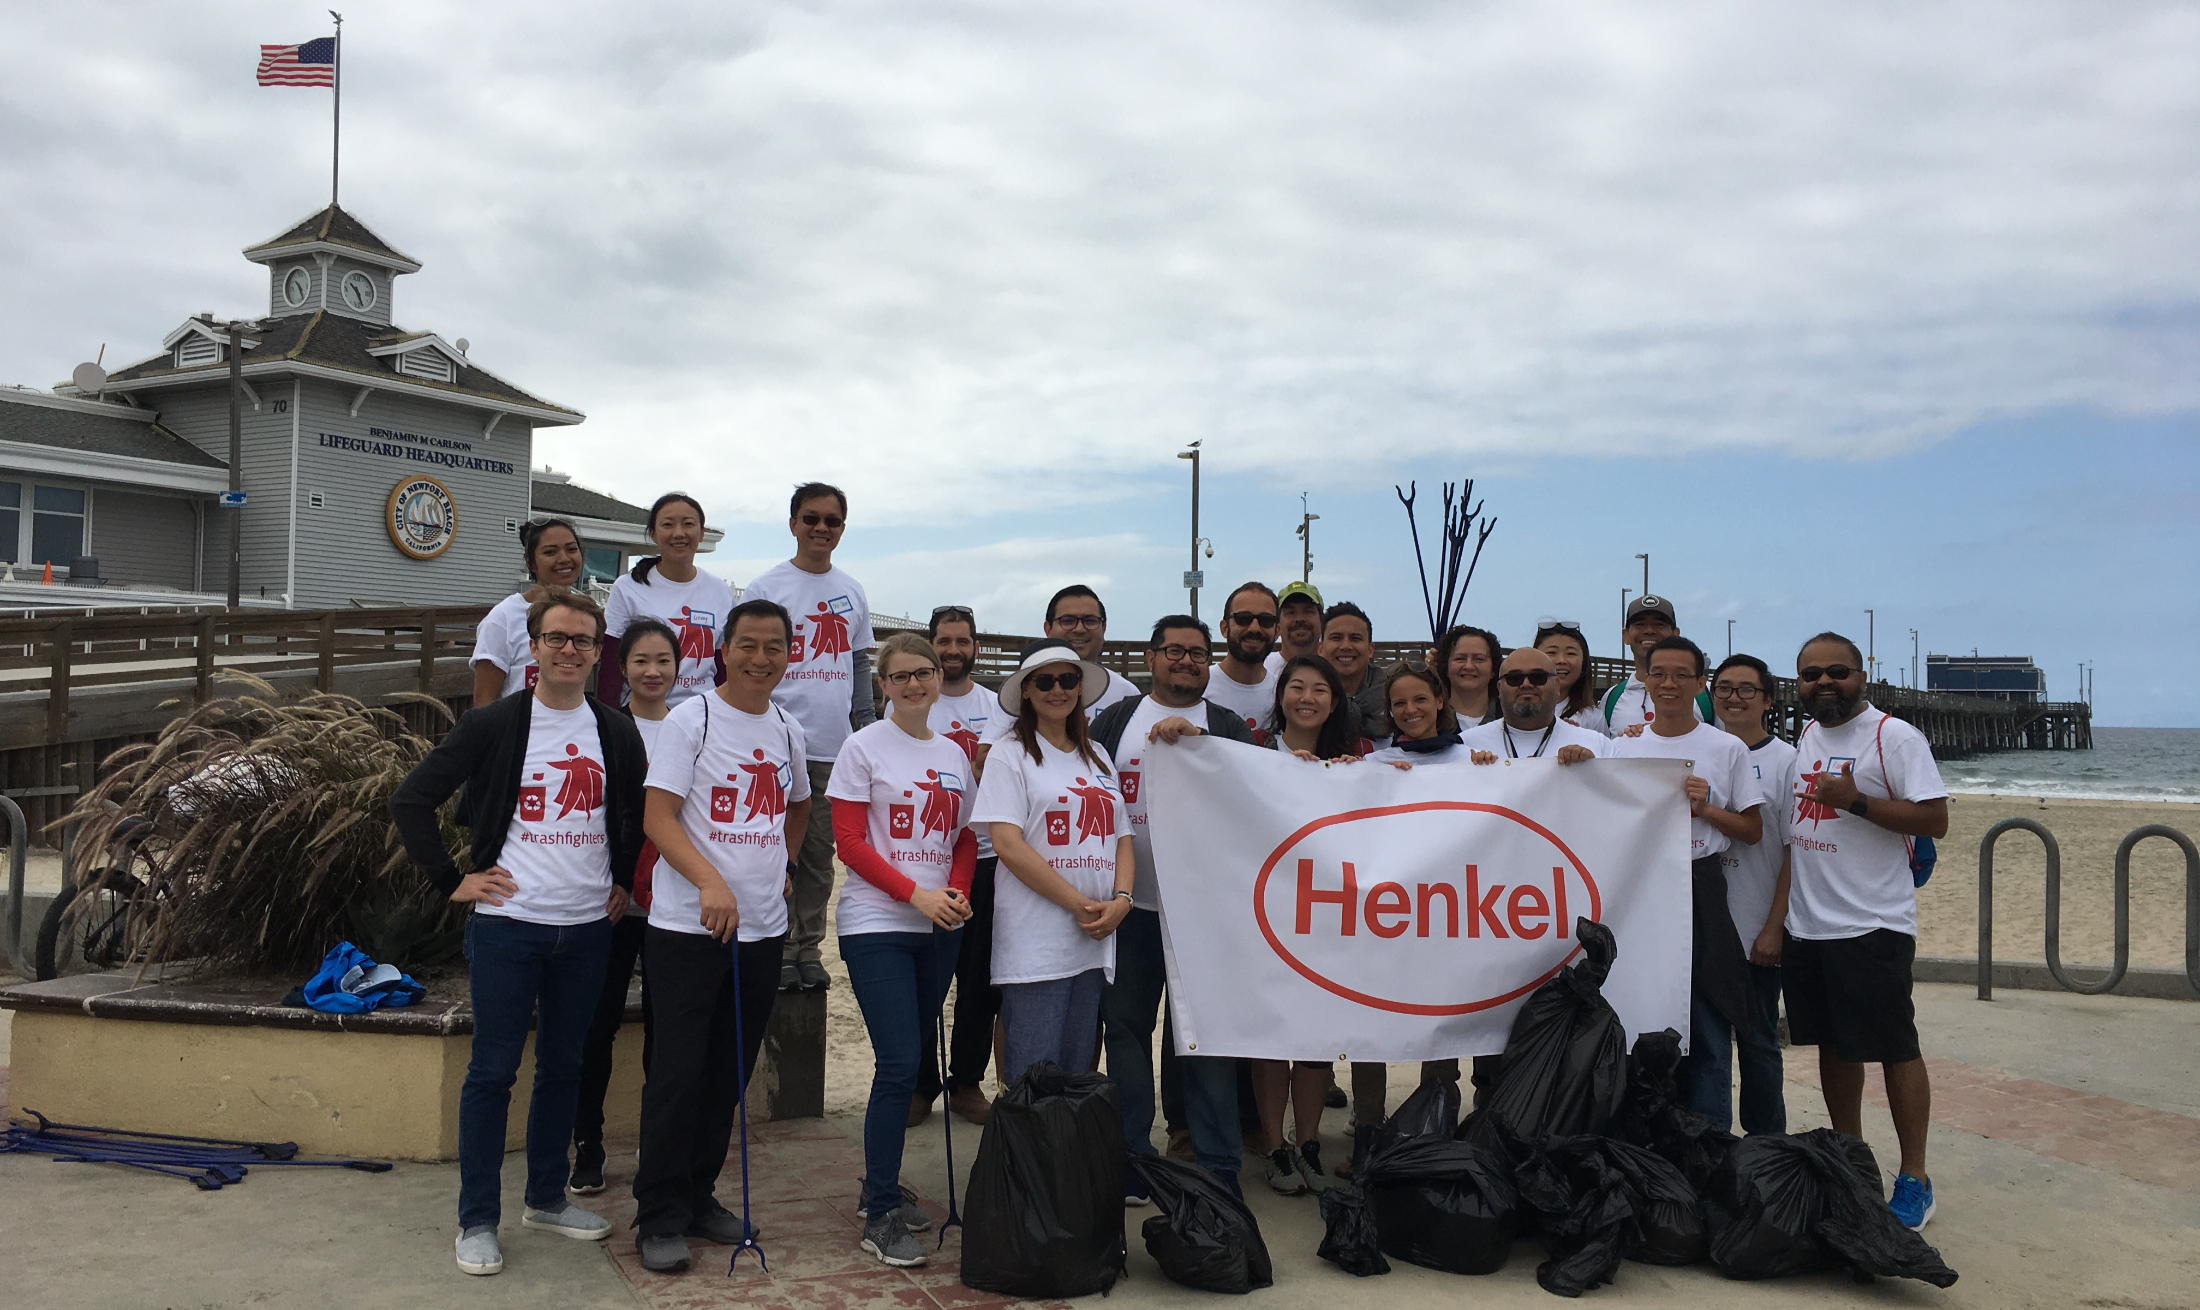 Employees in Irvine, CA collected trash and inspired beachgoers to join in the effort along a one-mile stretch at Newport Beach.